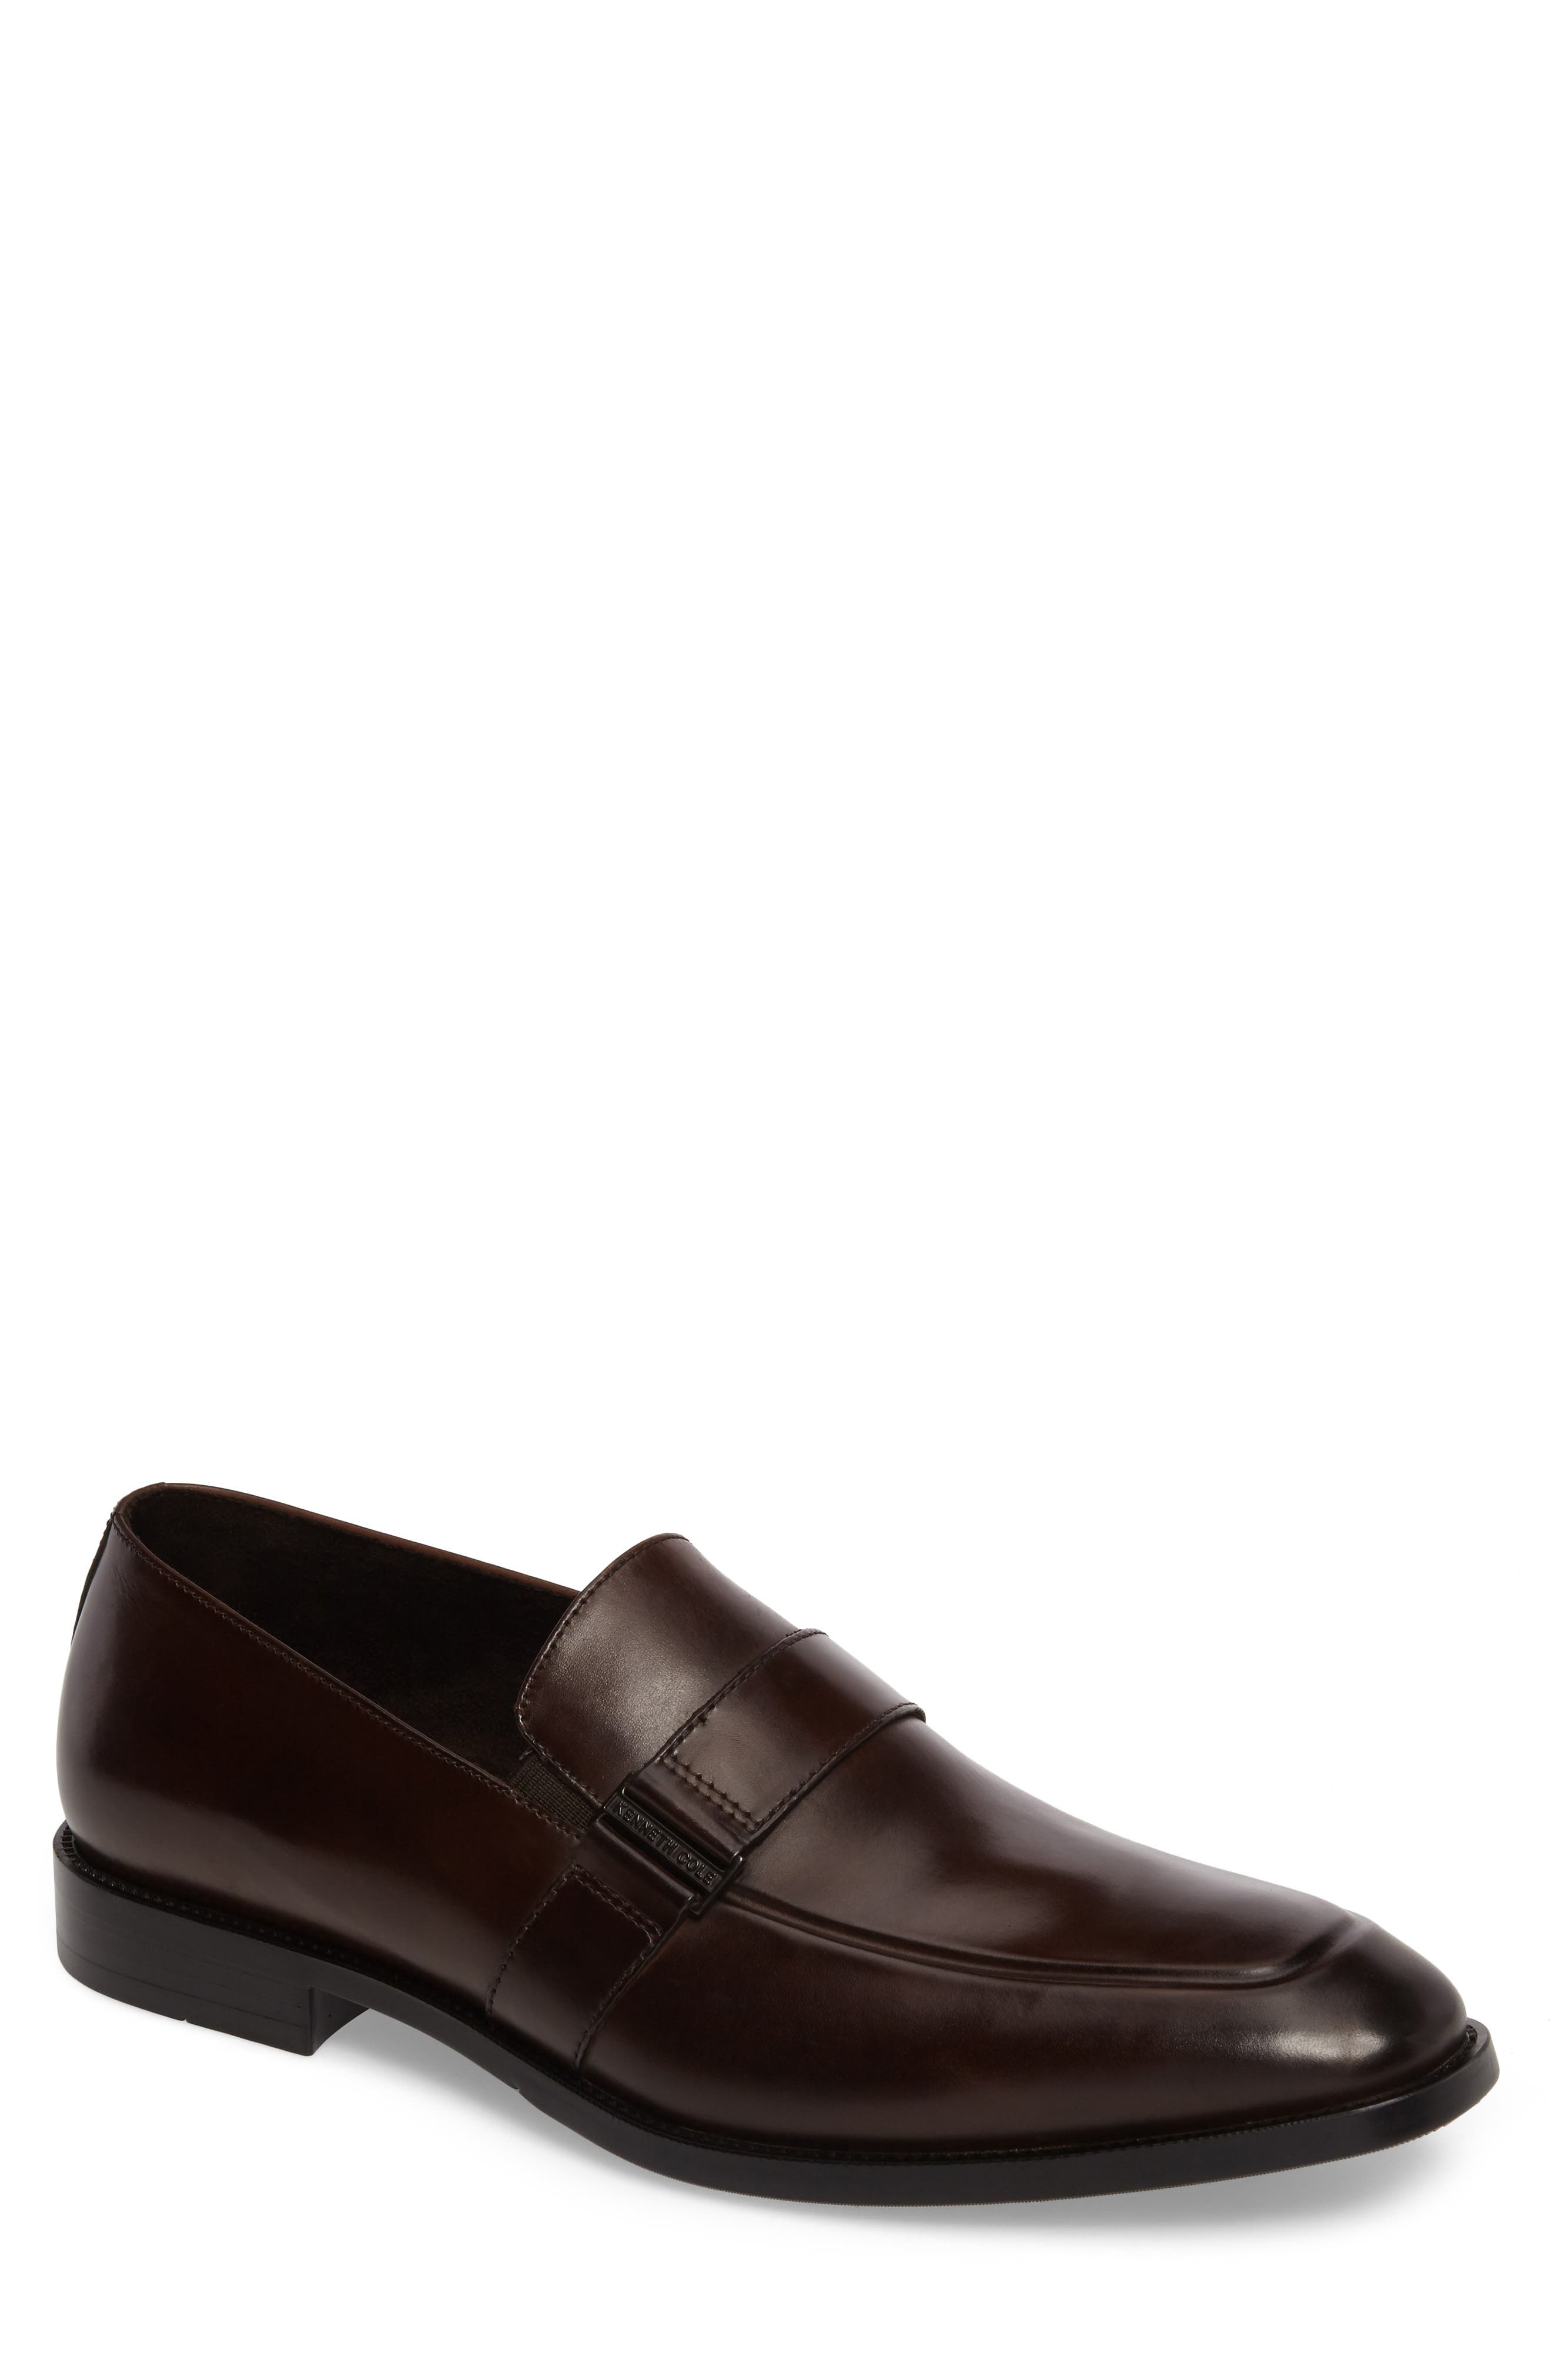 Apron Toe Loafer,                         Main,                         color, Brown Leather